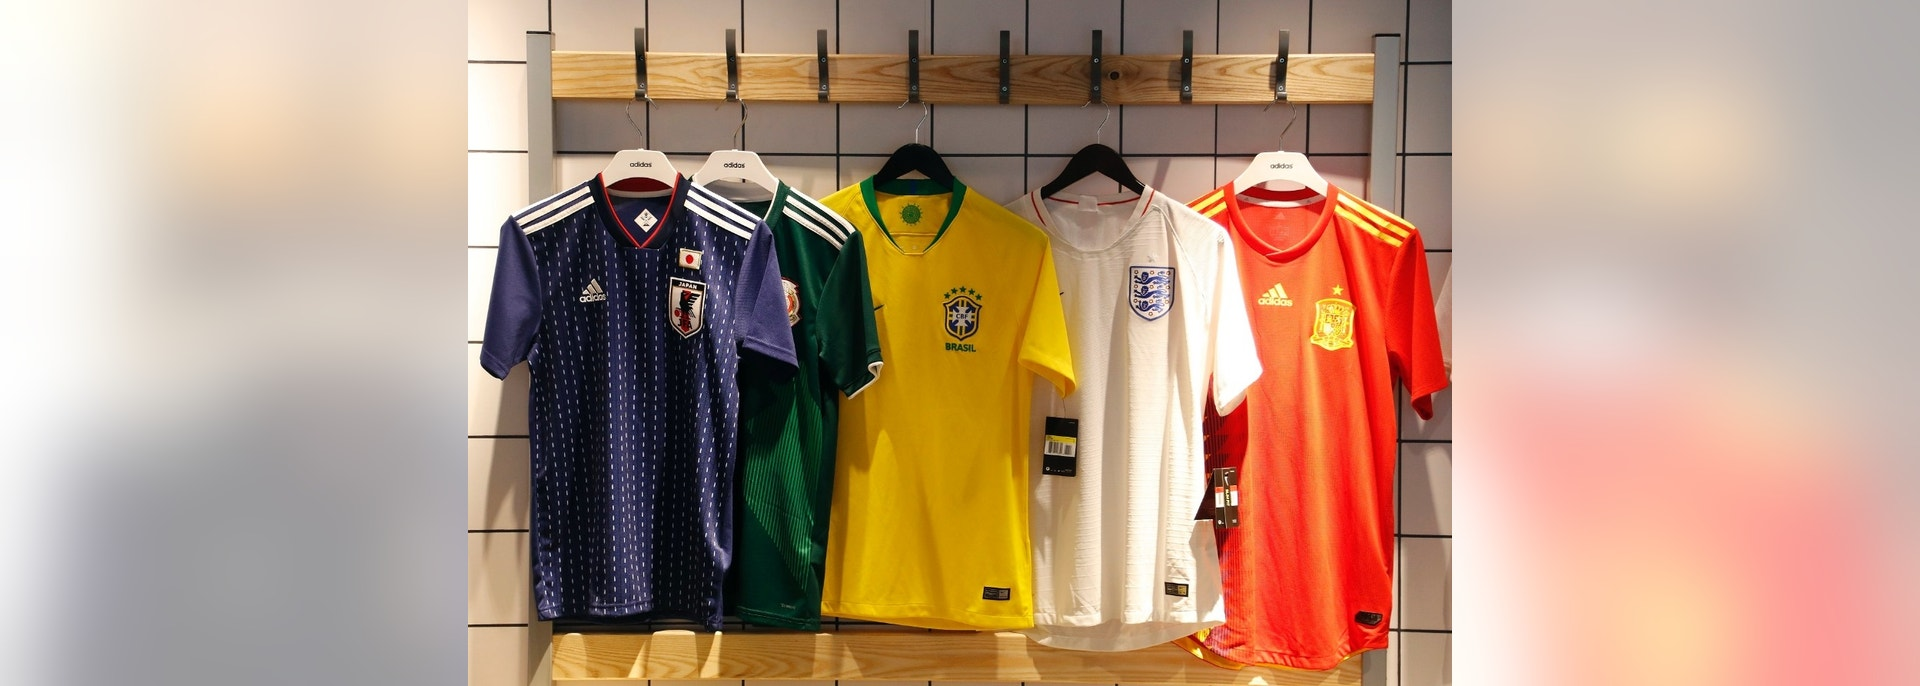 In this June 5, 2018 photo national soccer team jerseys of Japan, from left, Mexico, Brazil, England and Spain are on display at a shop in London. With just days to go before the FIFA World Cup, some winners and losers have emerged among the often wild and wacky team jerseys. (AP Photo/Frank Augstein)